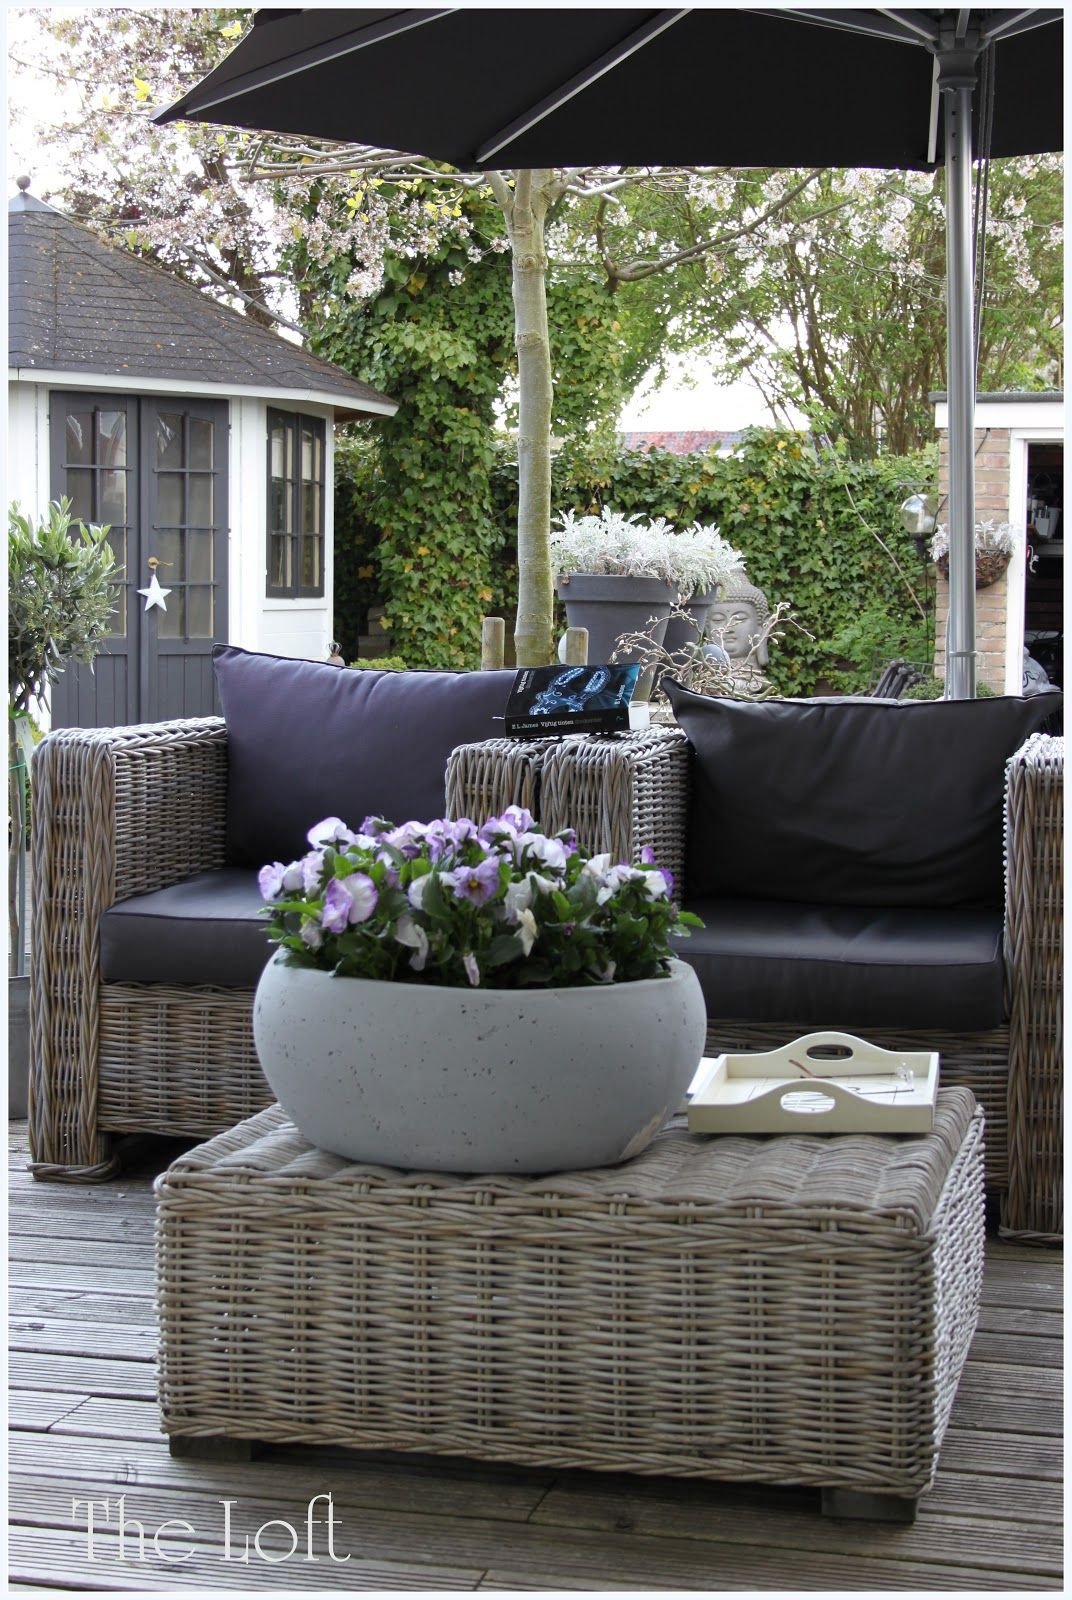 Bon For Upstairs Balcony: Garden U0027loungeu0027 With Palest Wicker Furniture, Grey  Cushions And Umbrella With A Large Stone Bowl Filled With Pansies